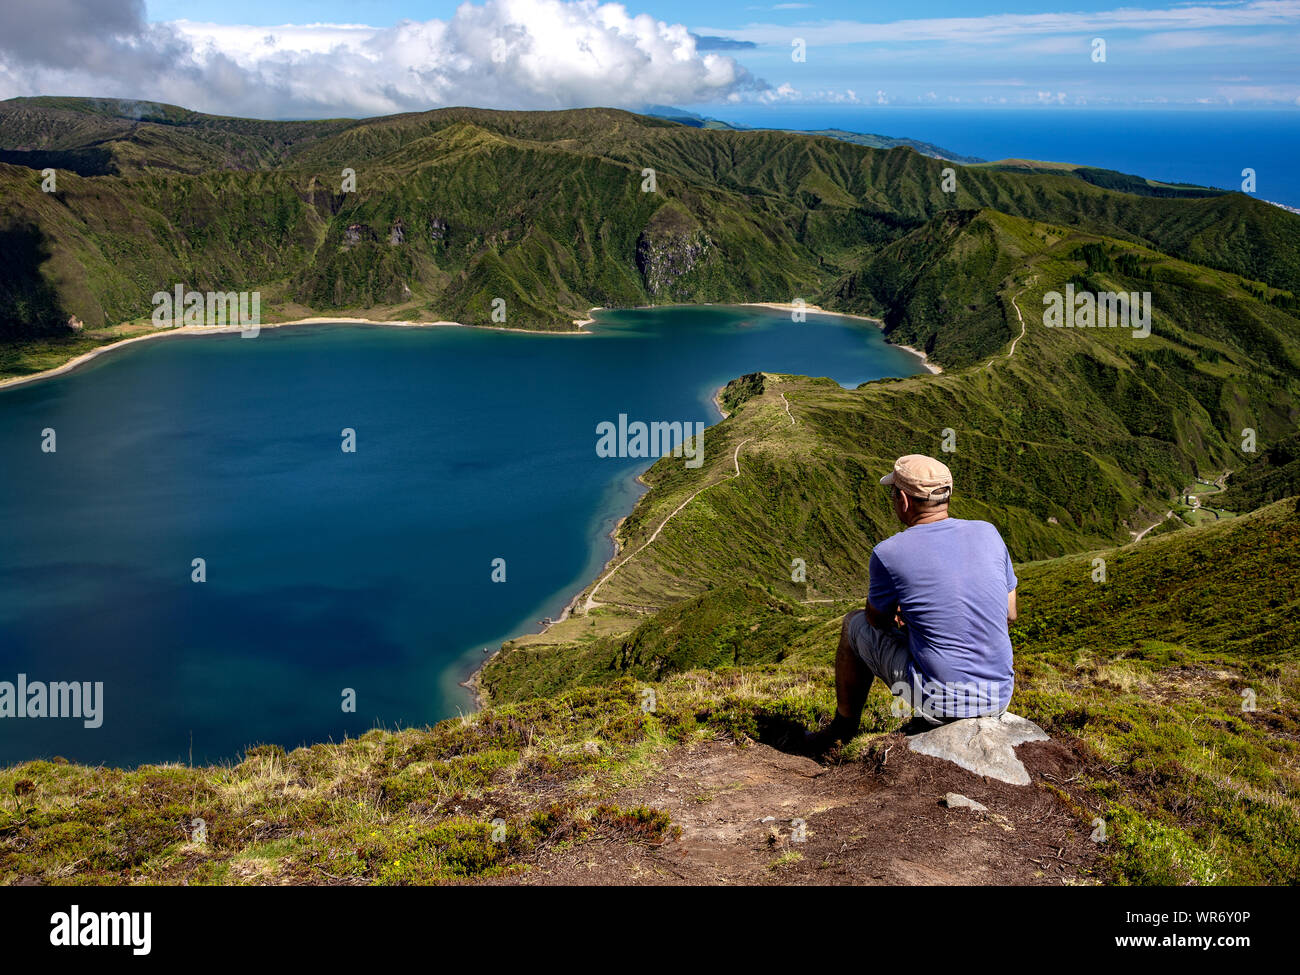 Man sitting on stone and looking towards the lake, Lagoa Fogo, Lake of Fire, São Miguel Island, Azores, Portugal, Europe. Stock Photo